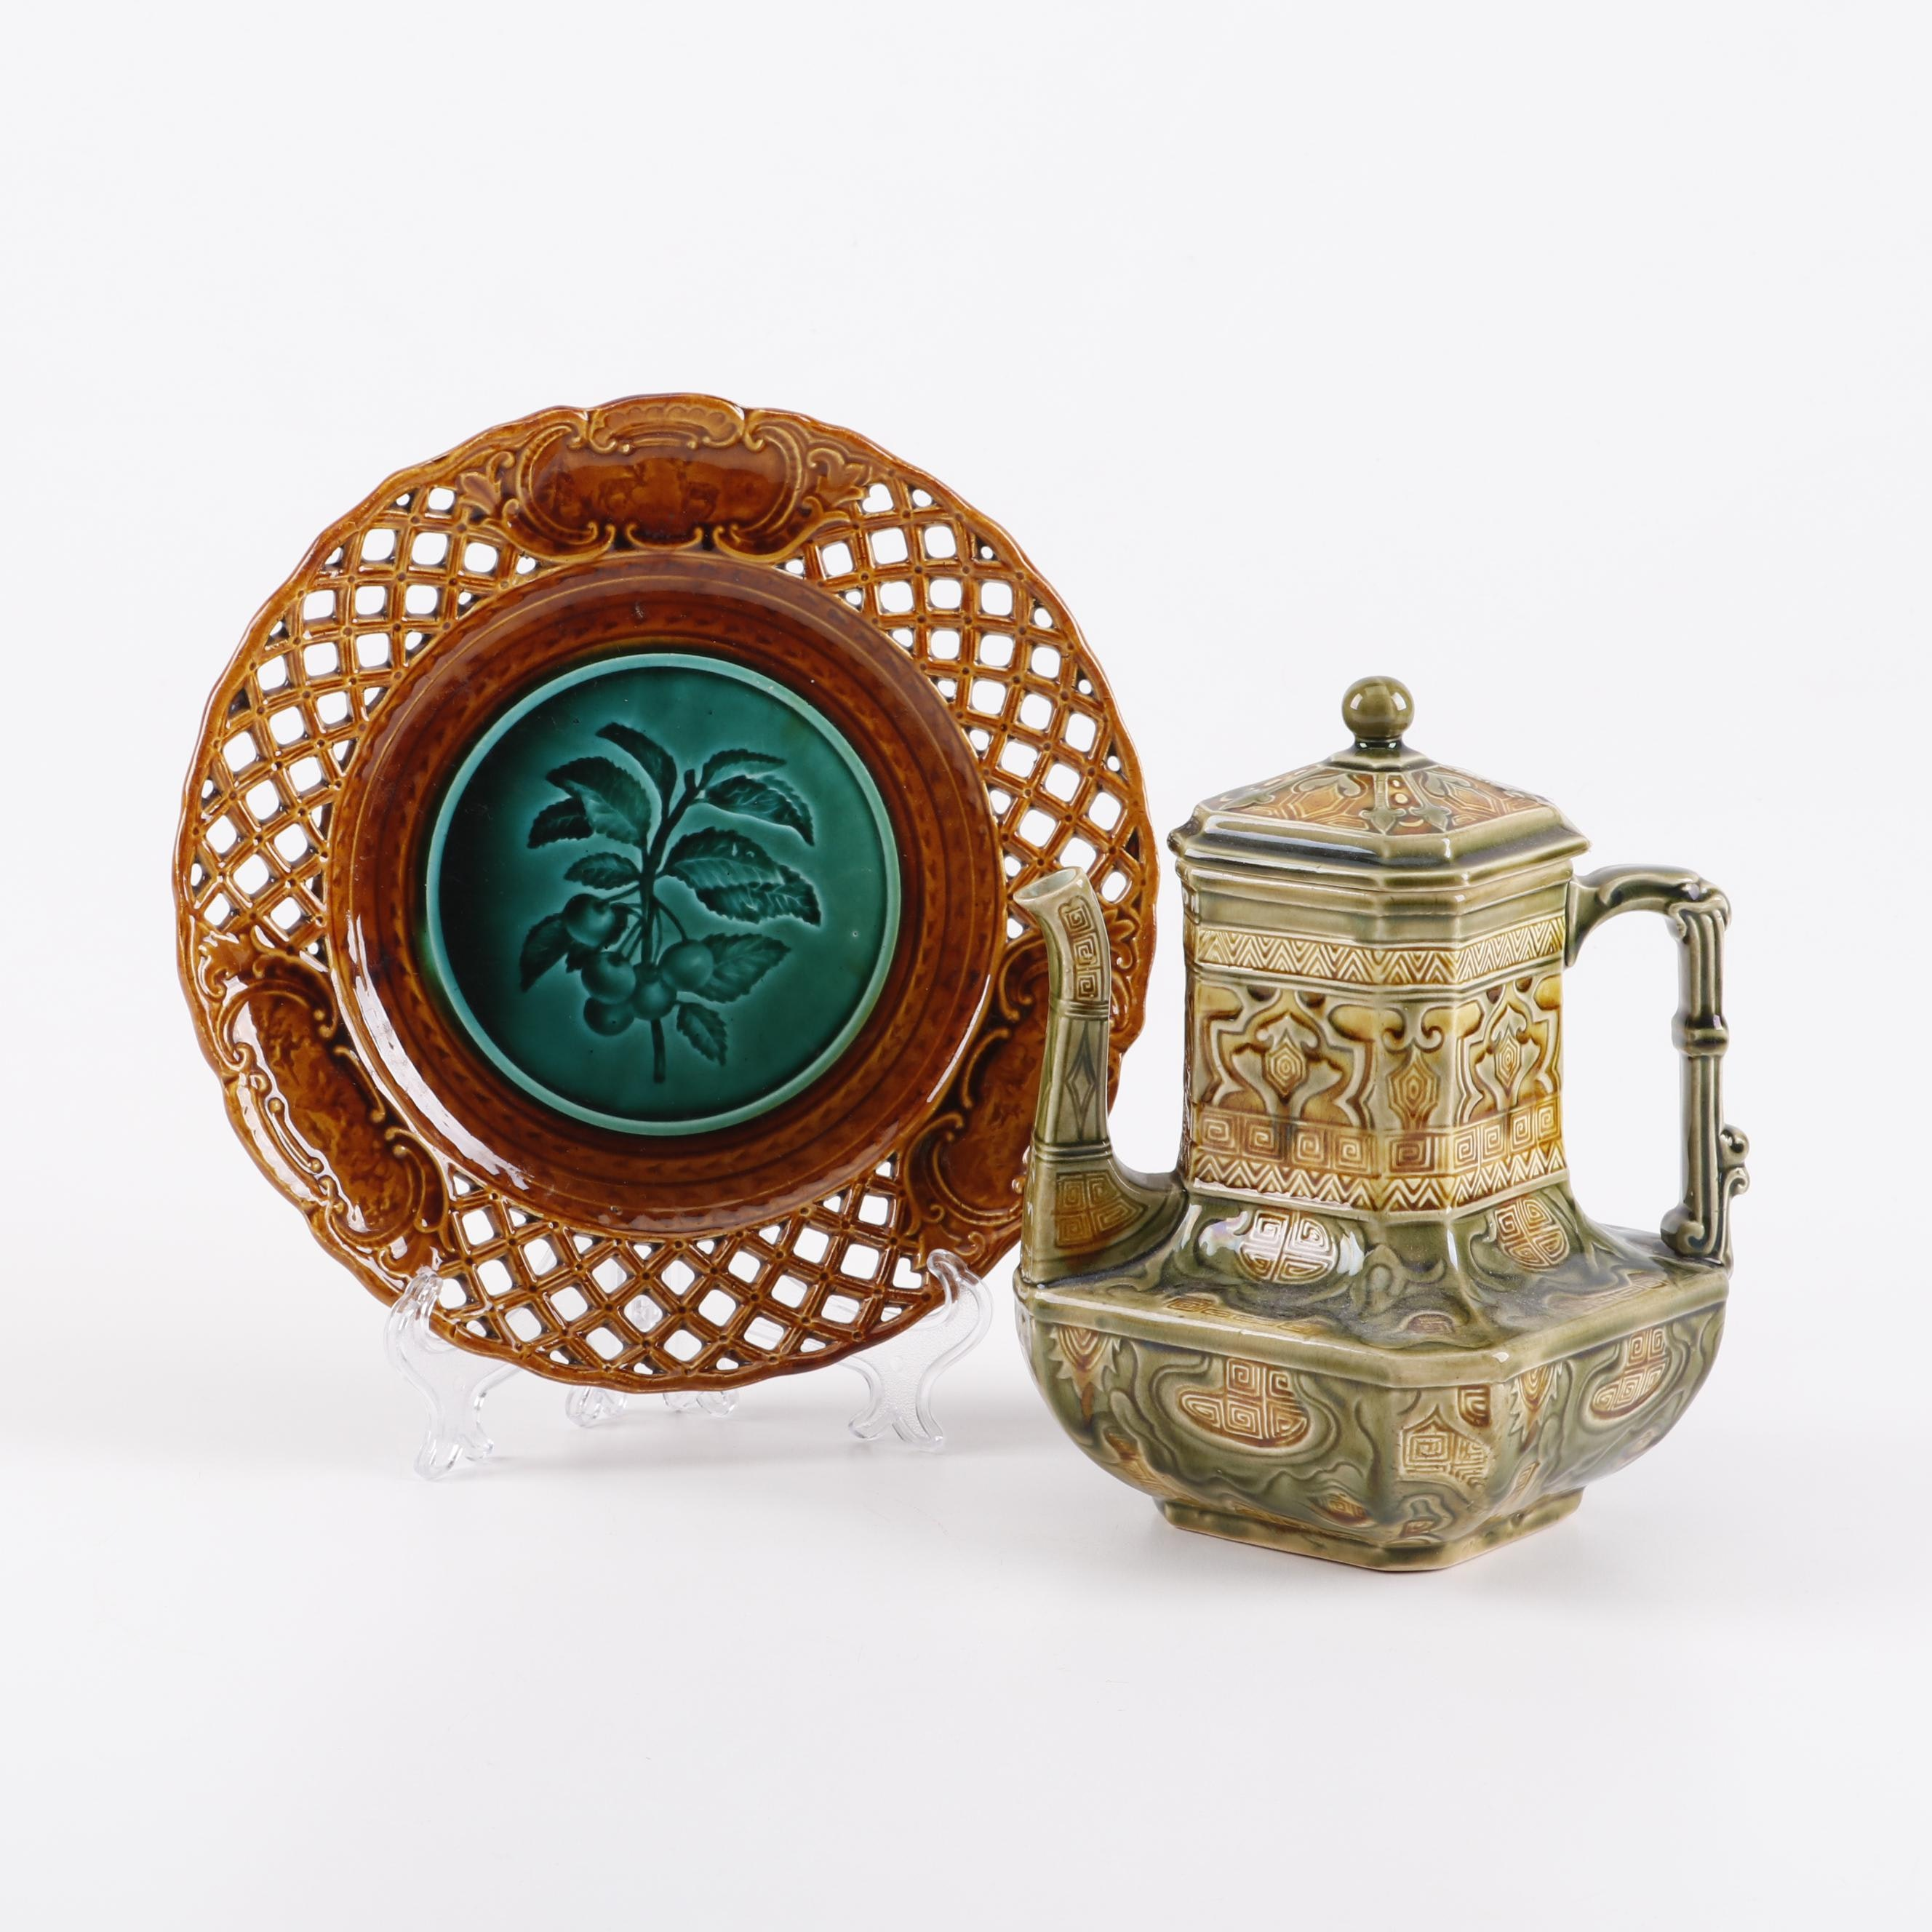 Vintage French Majolica Earthenware Teapot and Plate